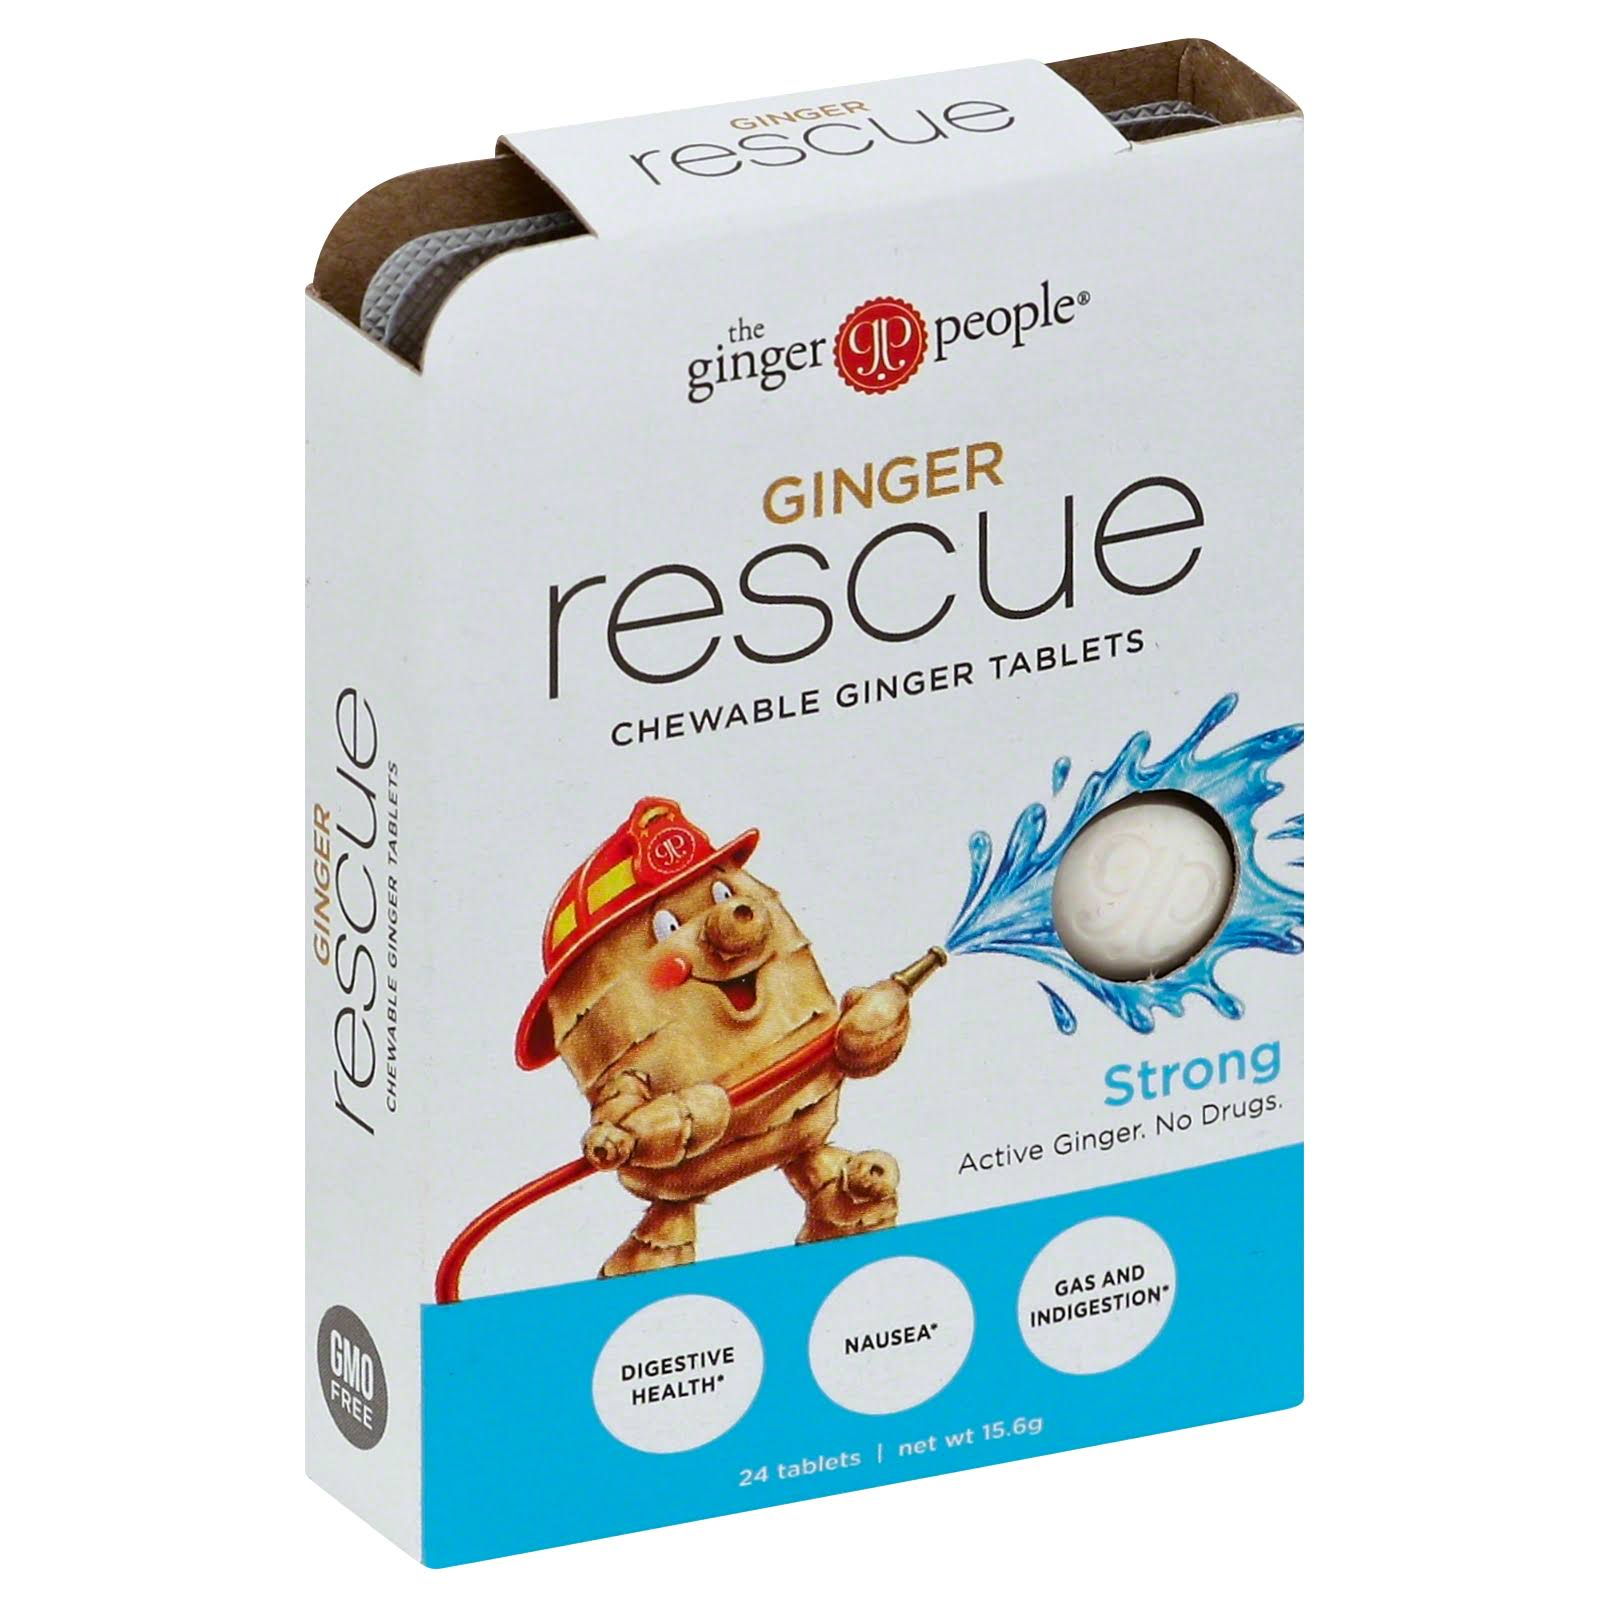 The Ginger People Ginger Rescue Chewable Ginger Tablets - 24 Tablets, 15.6g